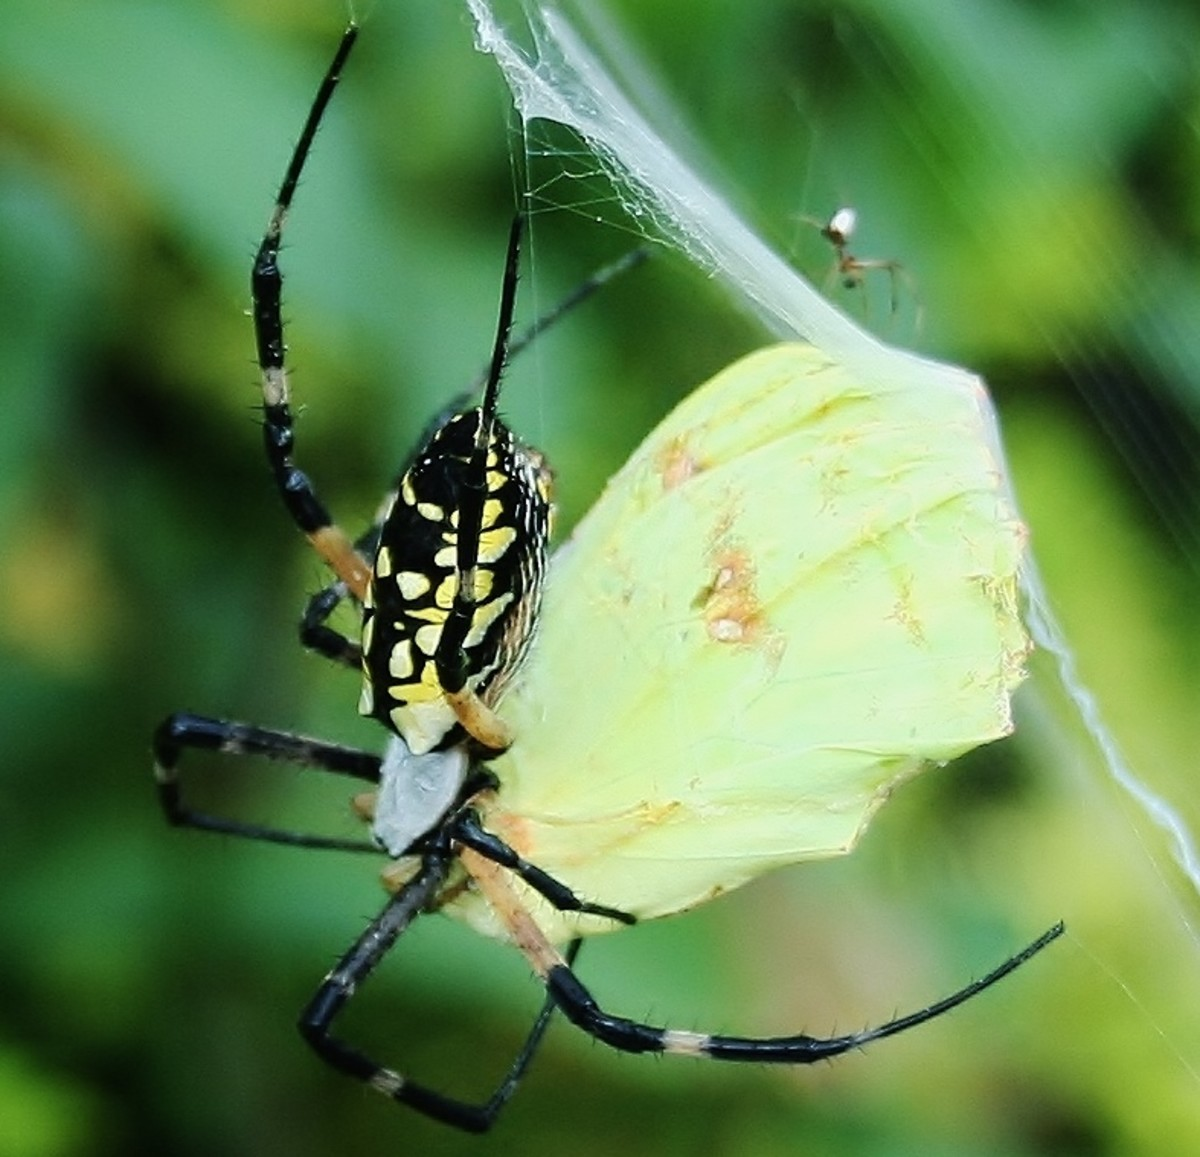 A yellow garden spider prepping a moth for dinner.